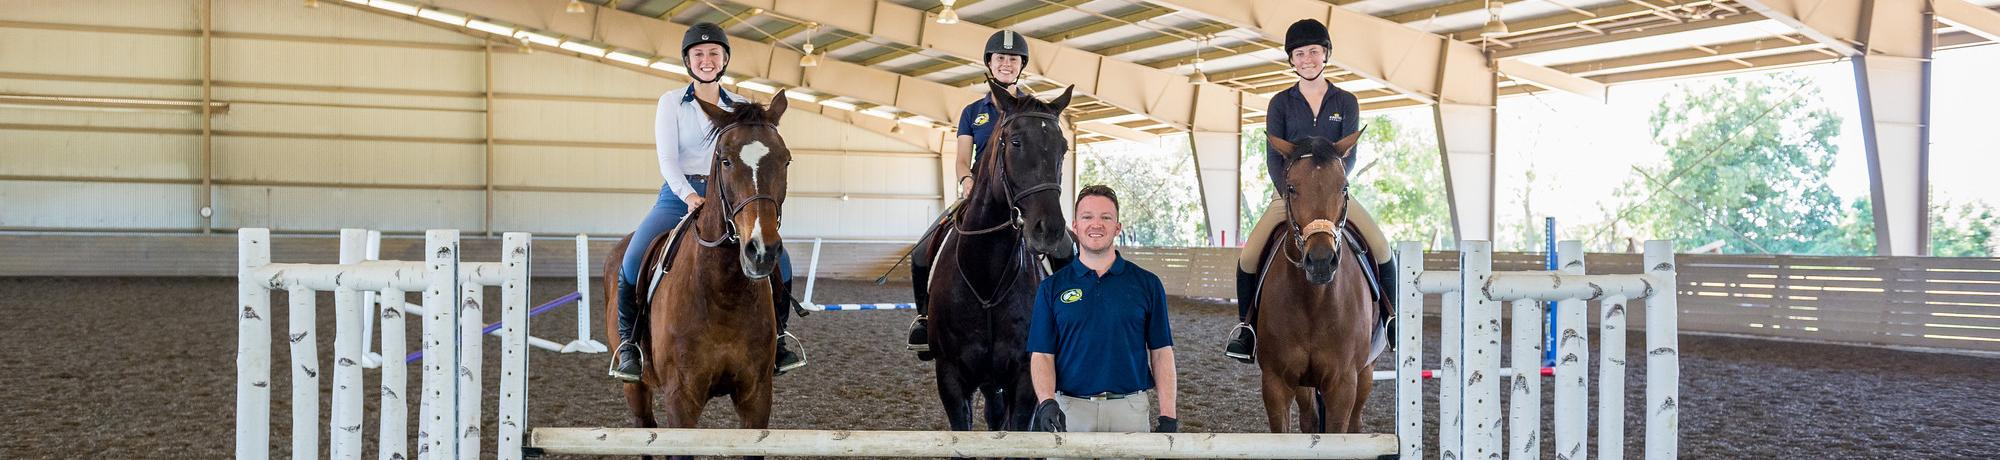 Equestrians posing in front of the camera alongside an instructor